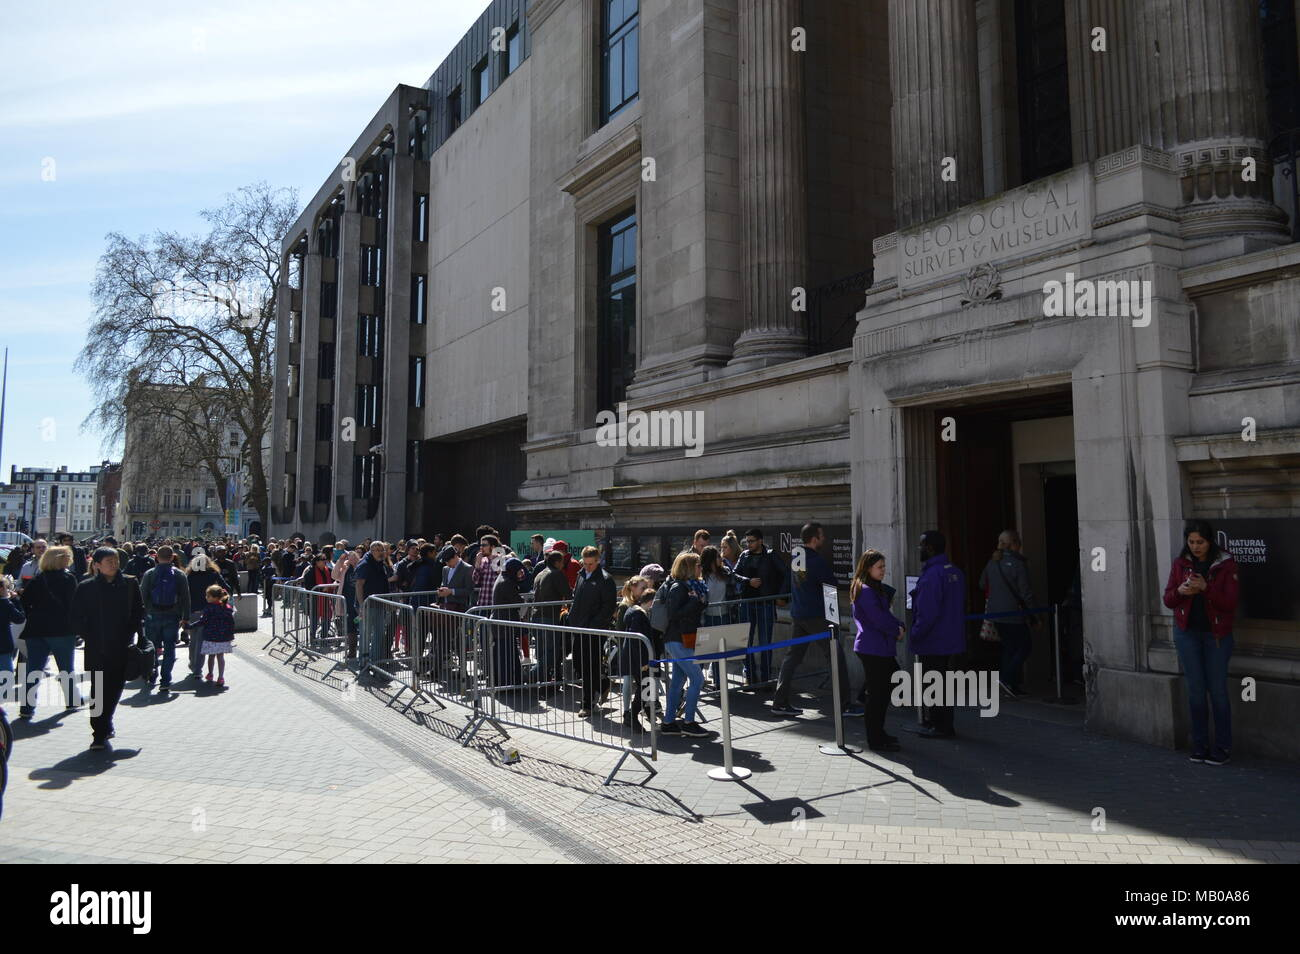 A queue outside the east entrance of the Natural History Museum in South Kensington, London - Stock Image